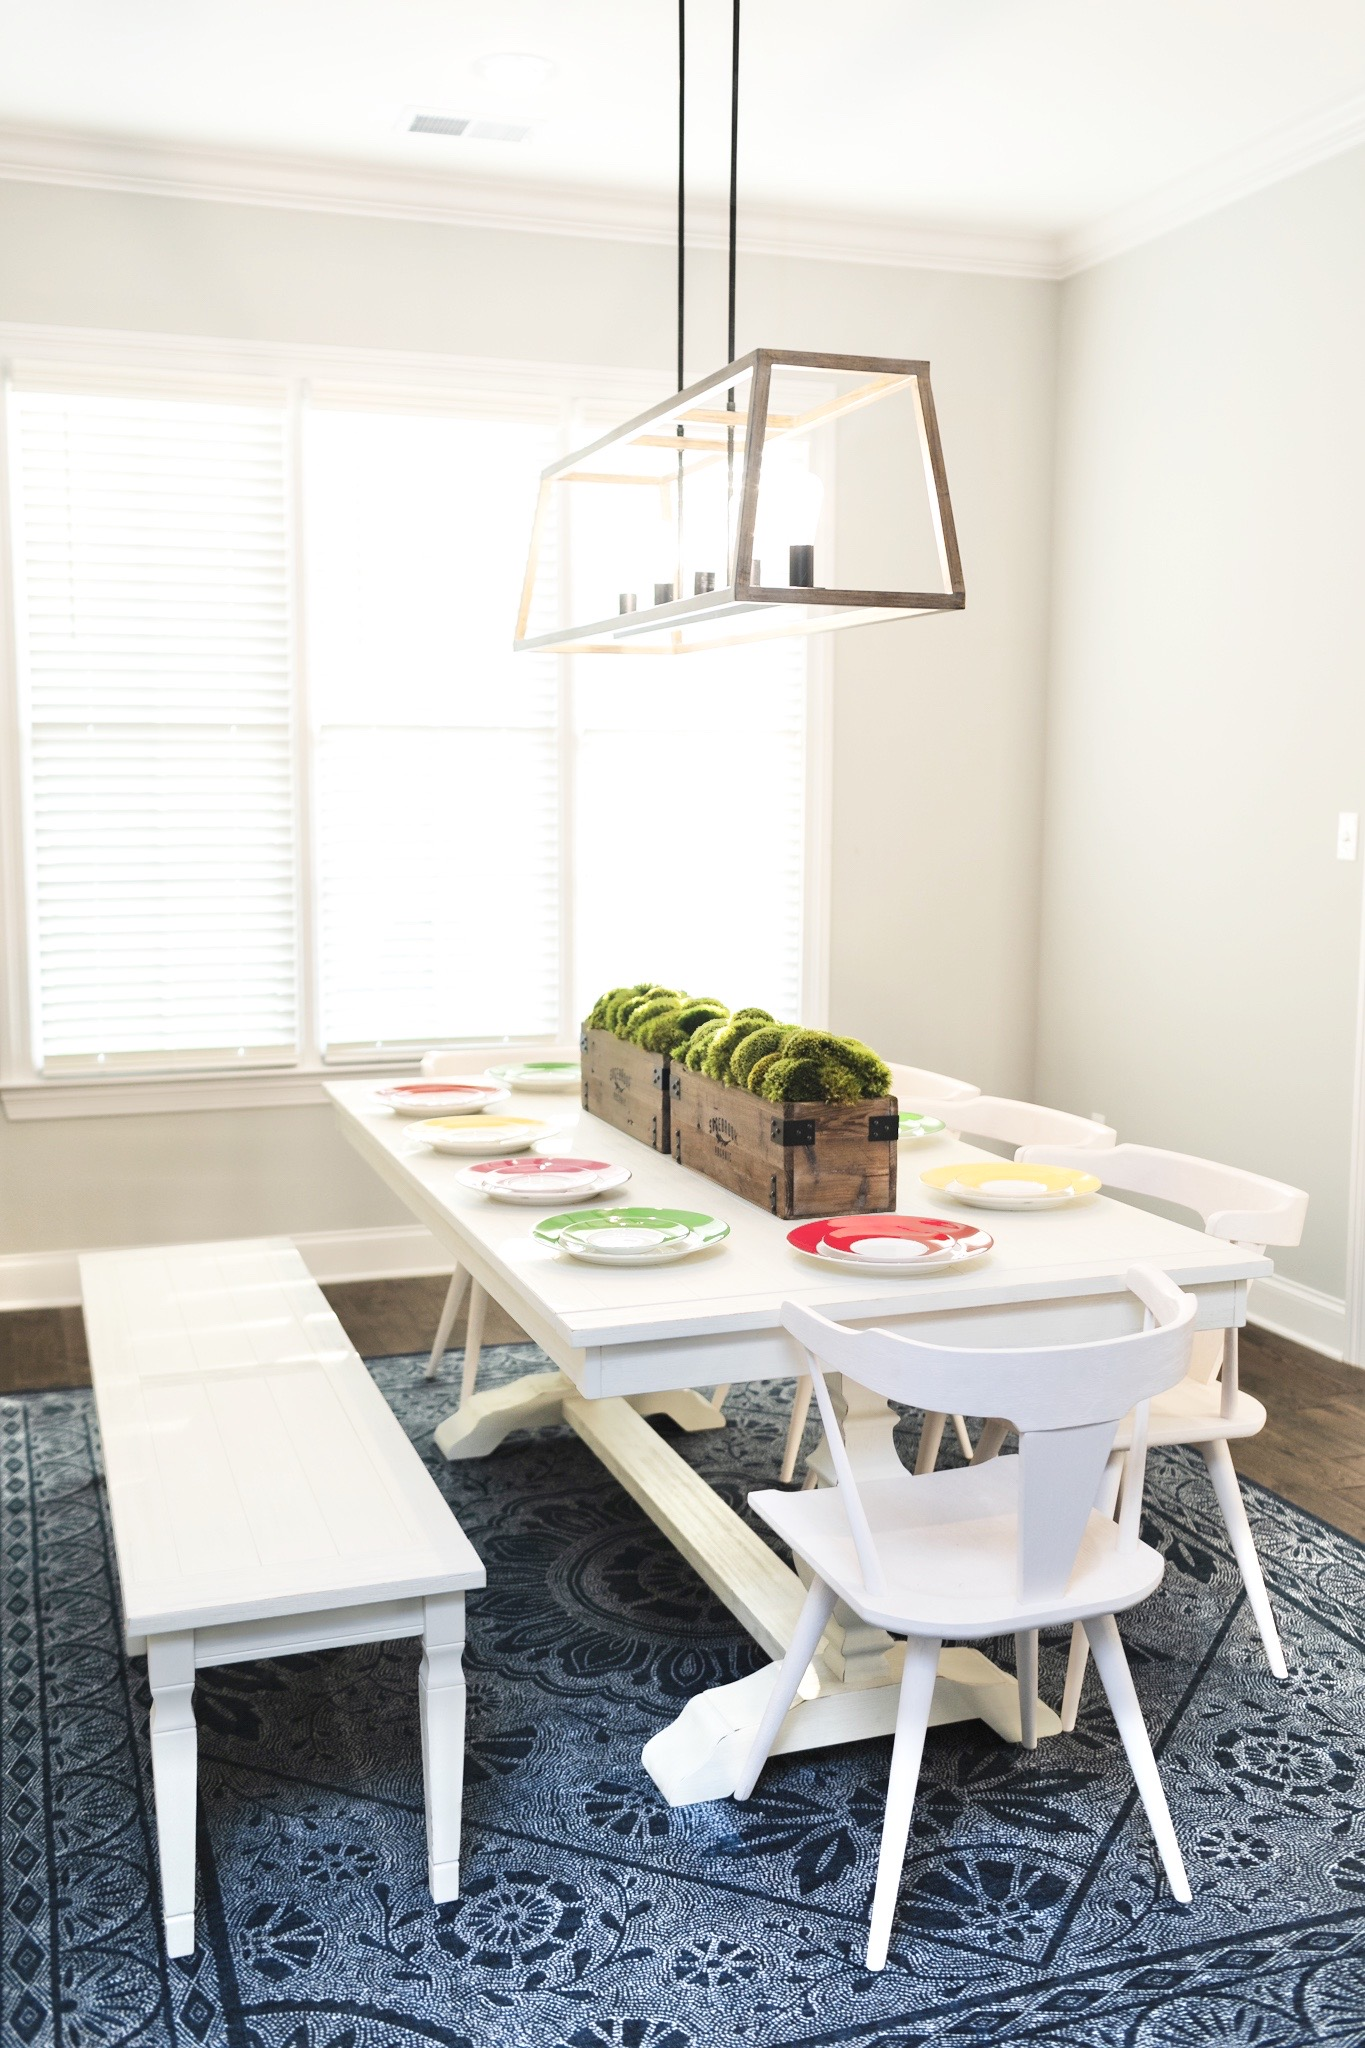 Ruggable Rugs review by top Memphis lifestyle blogger, Walking in Memphis in High Heels.